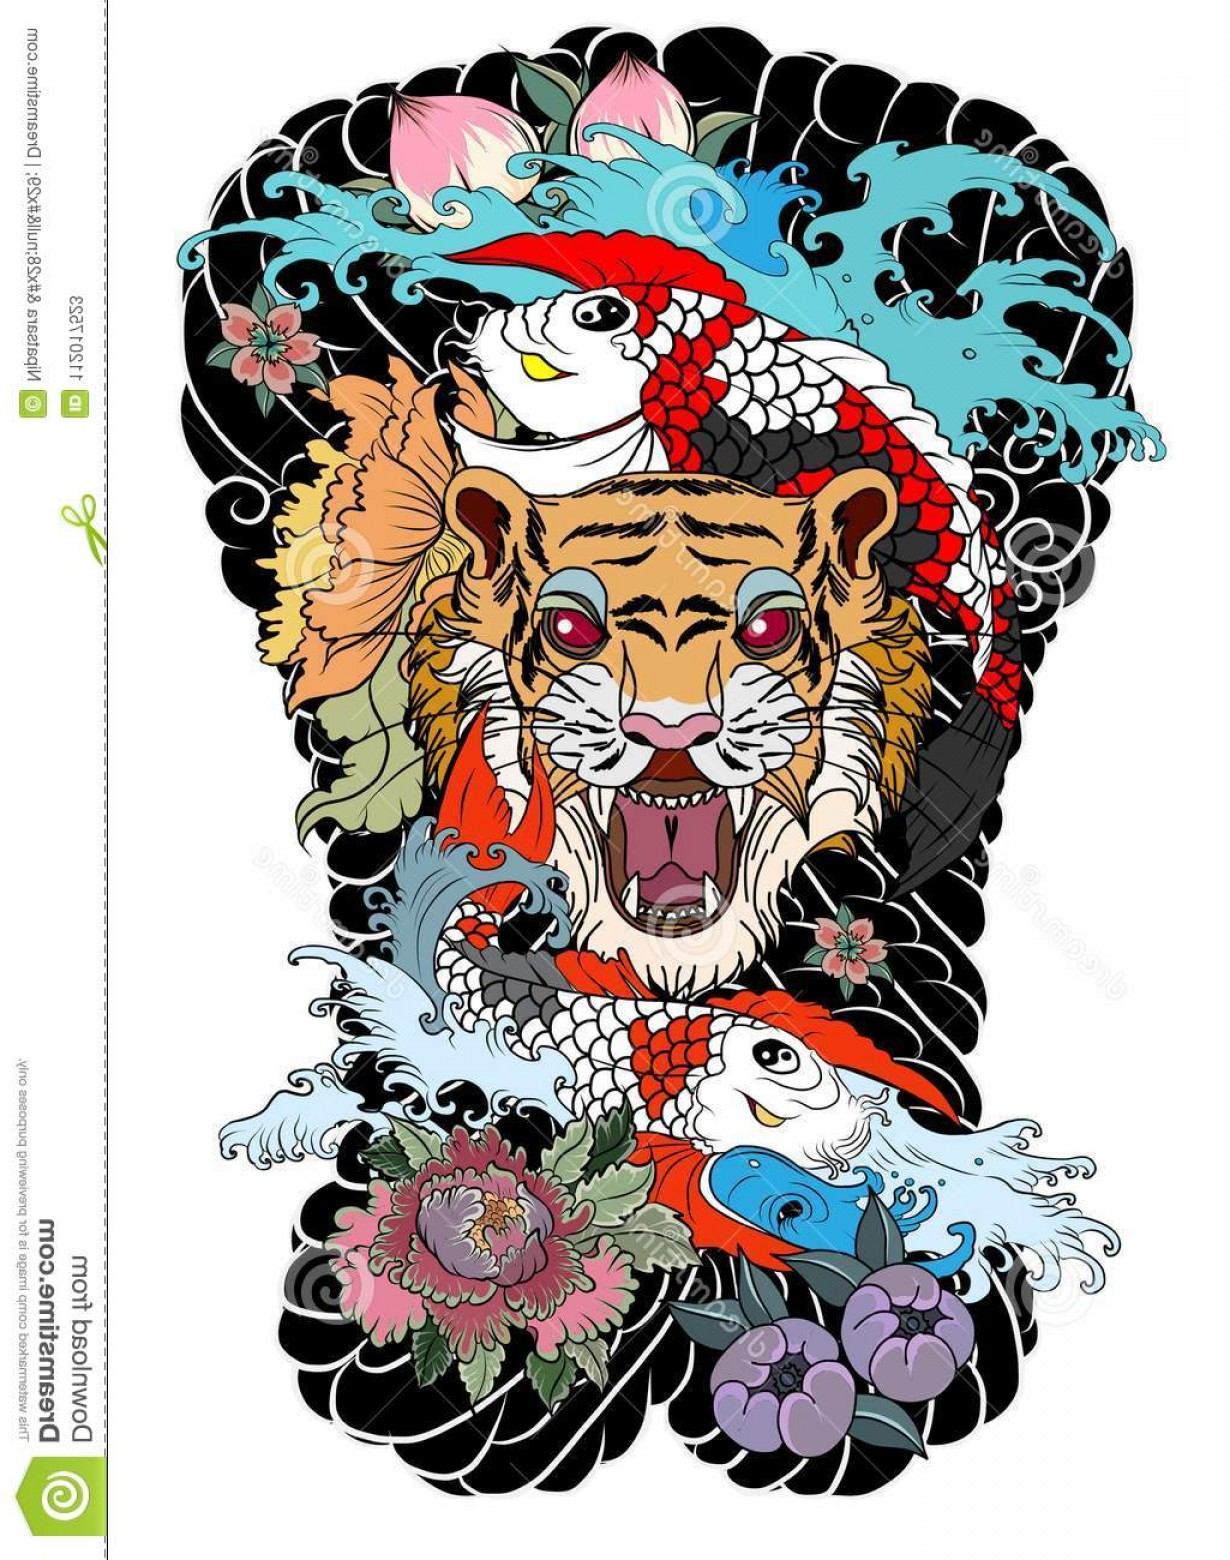 Full Body Tiger Roaring Vector: Tiger Face Koi Dragon Cloud Background Fish Roaring Tattoo Peach Peony Plum Flower Traditional Japanese Design Image